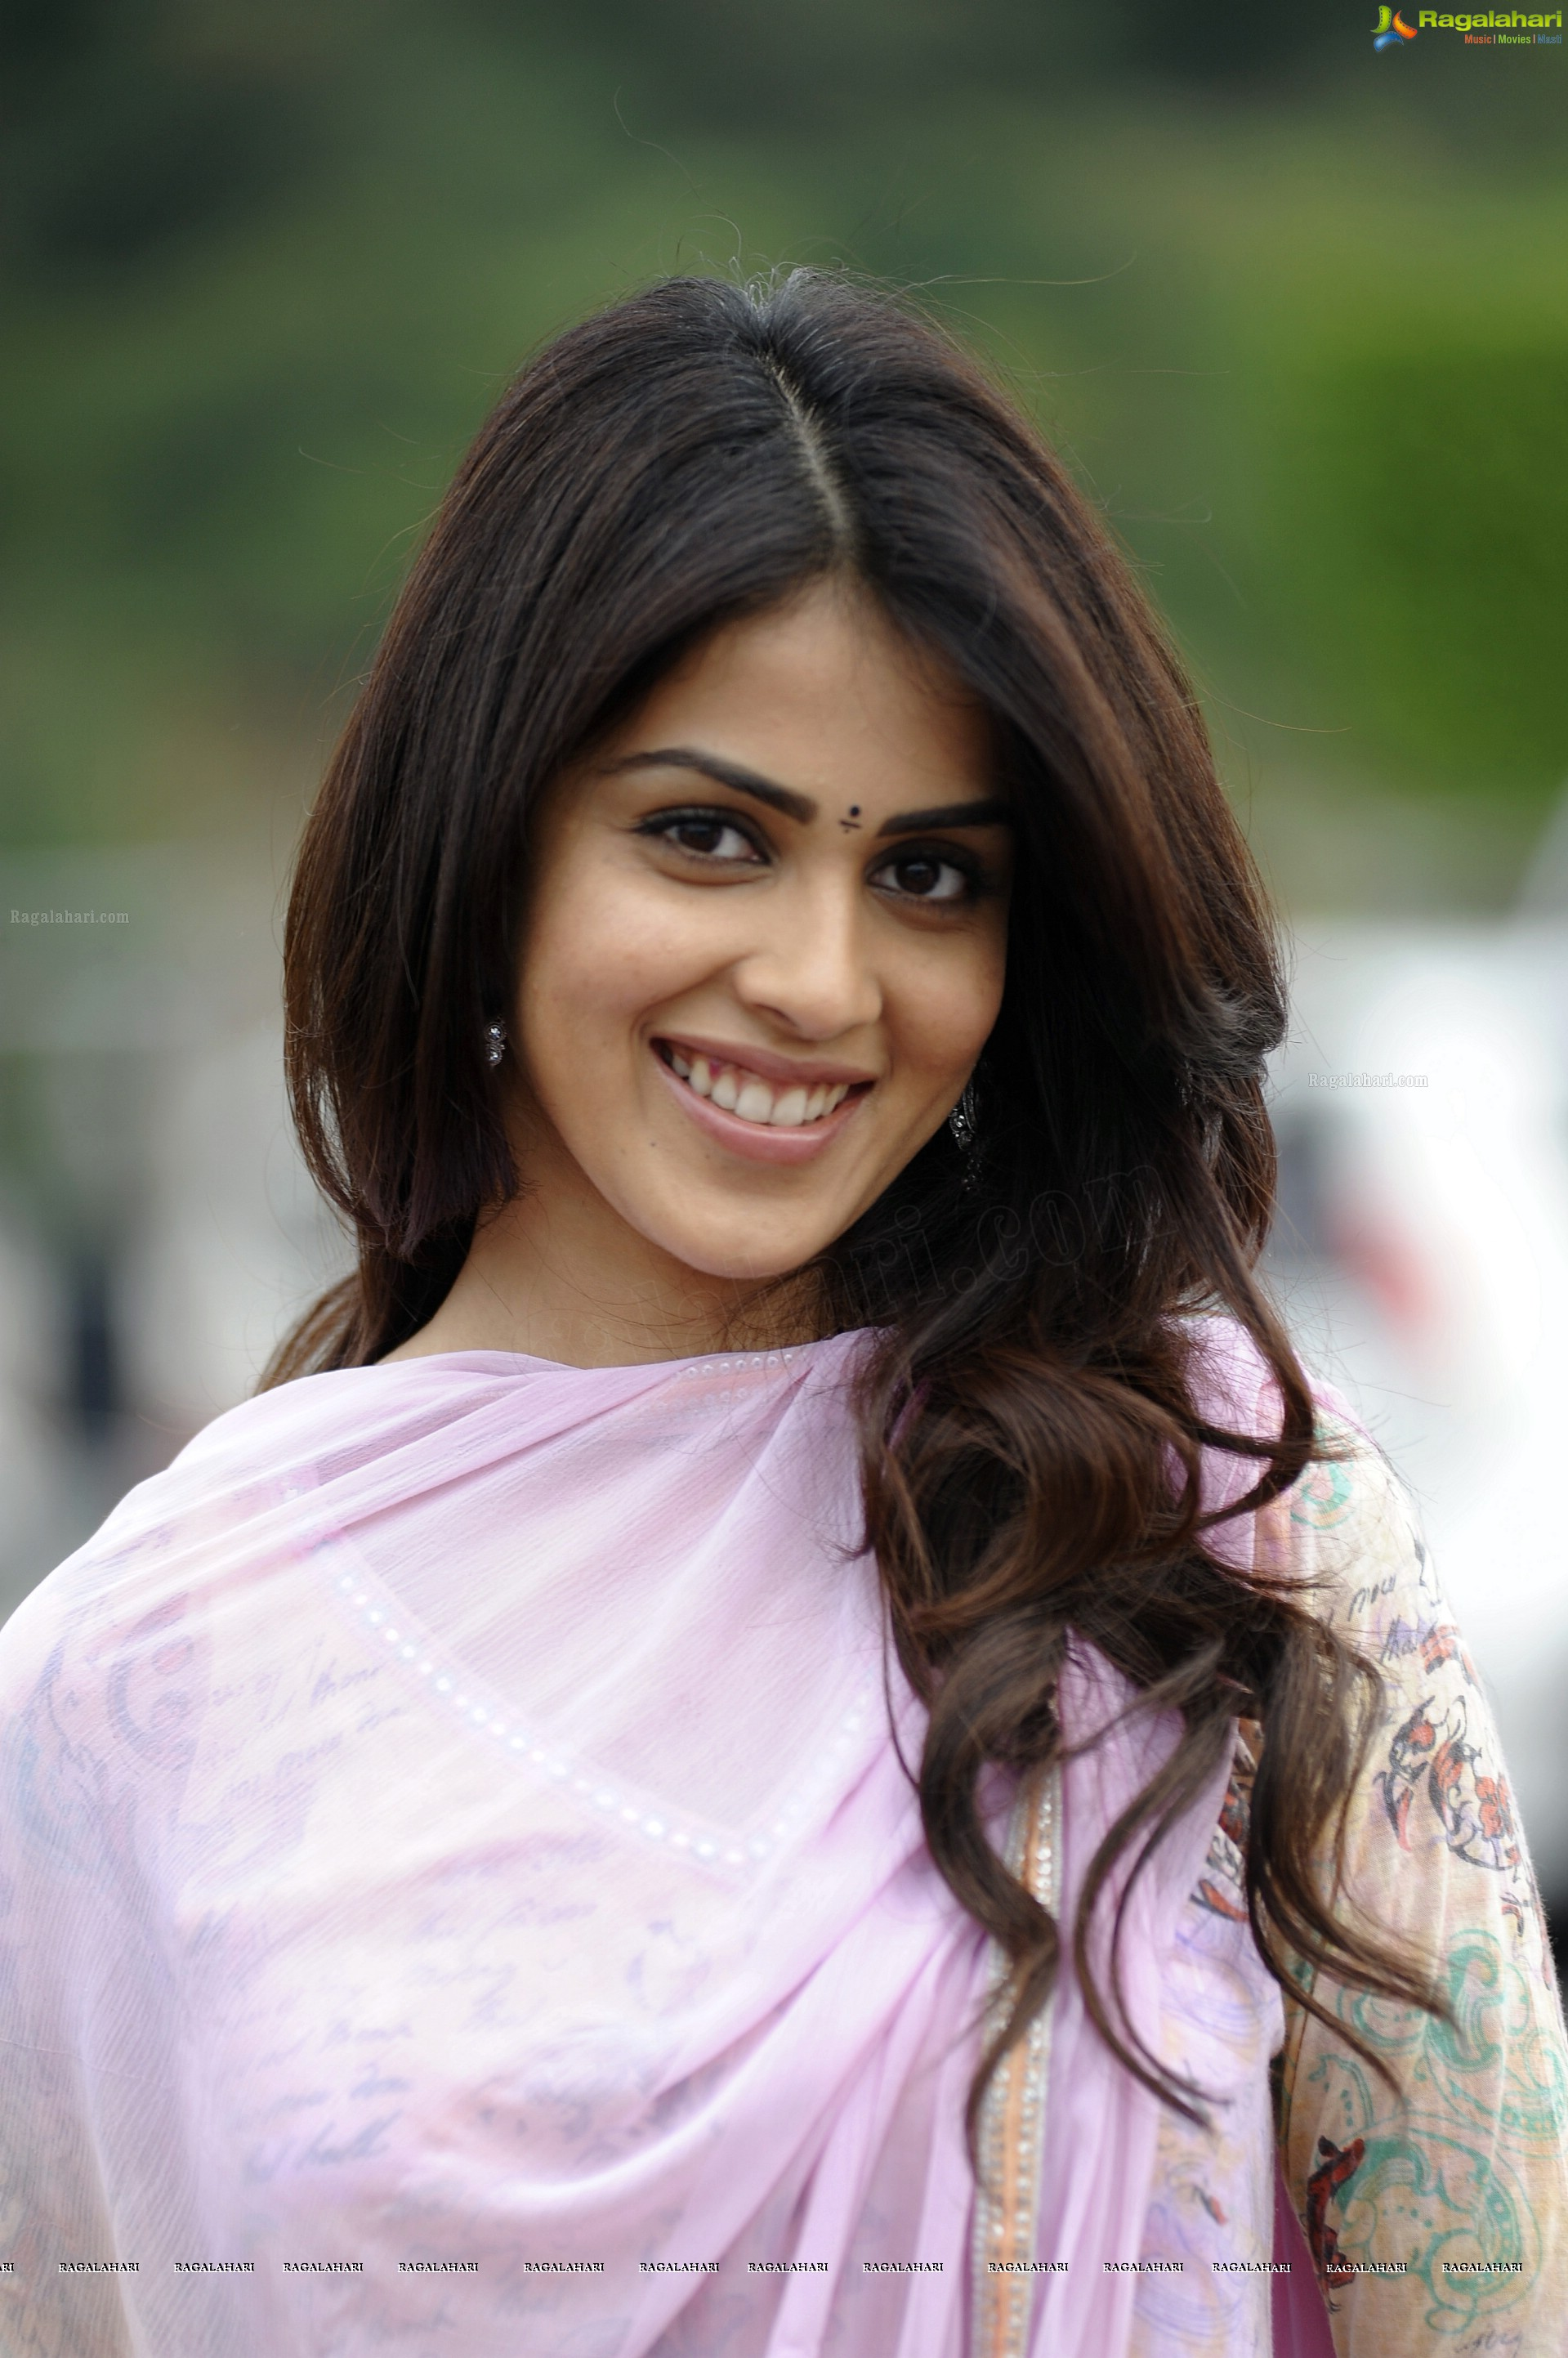 genelia (hd) image 18 | telugu actress photo gallery,images, photos